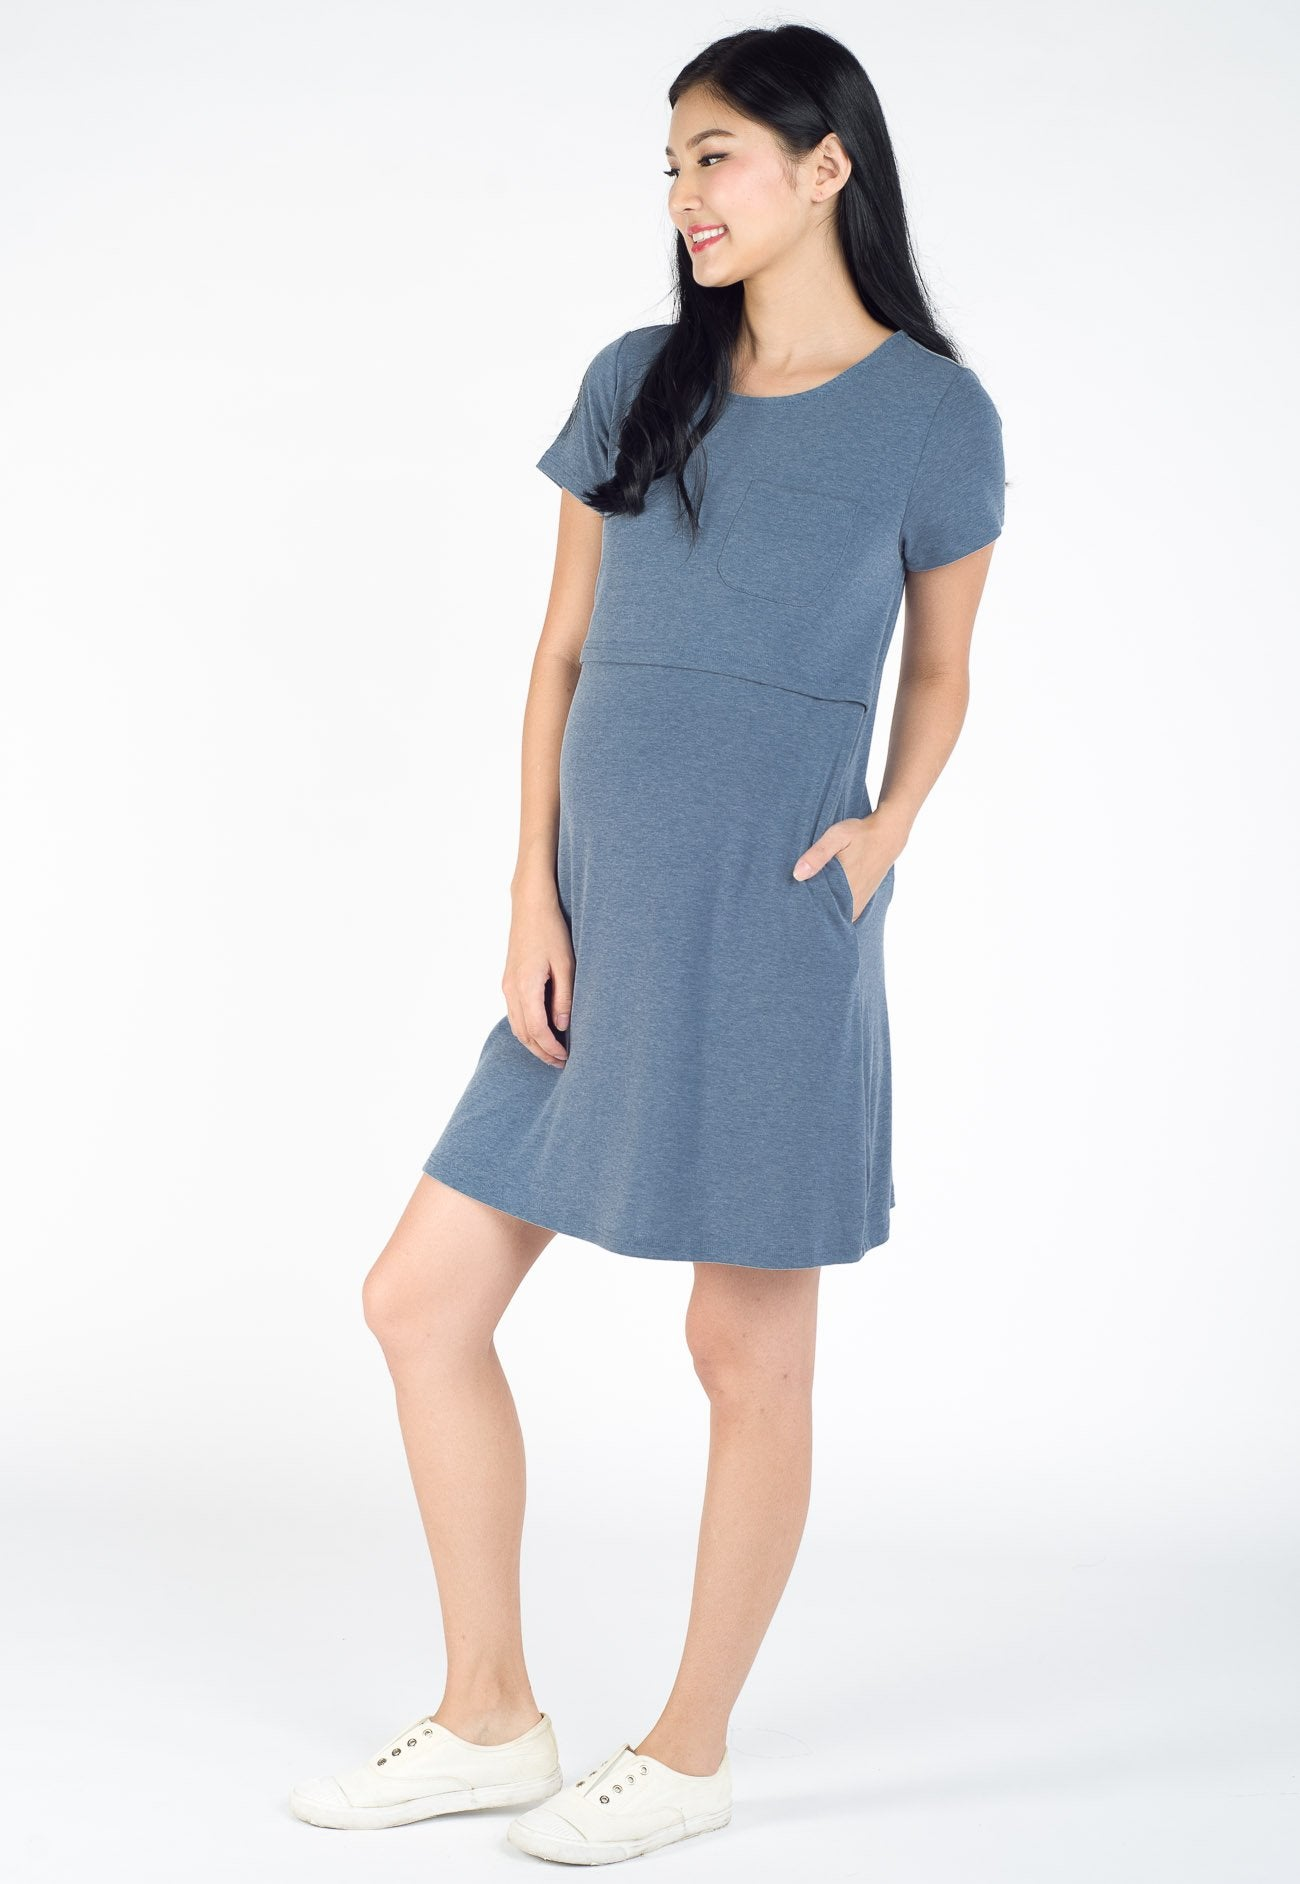 Hazel T-Shirt Nursing Dress in Blue  by Jump Eat Cry - Maternity and nursing wear